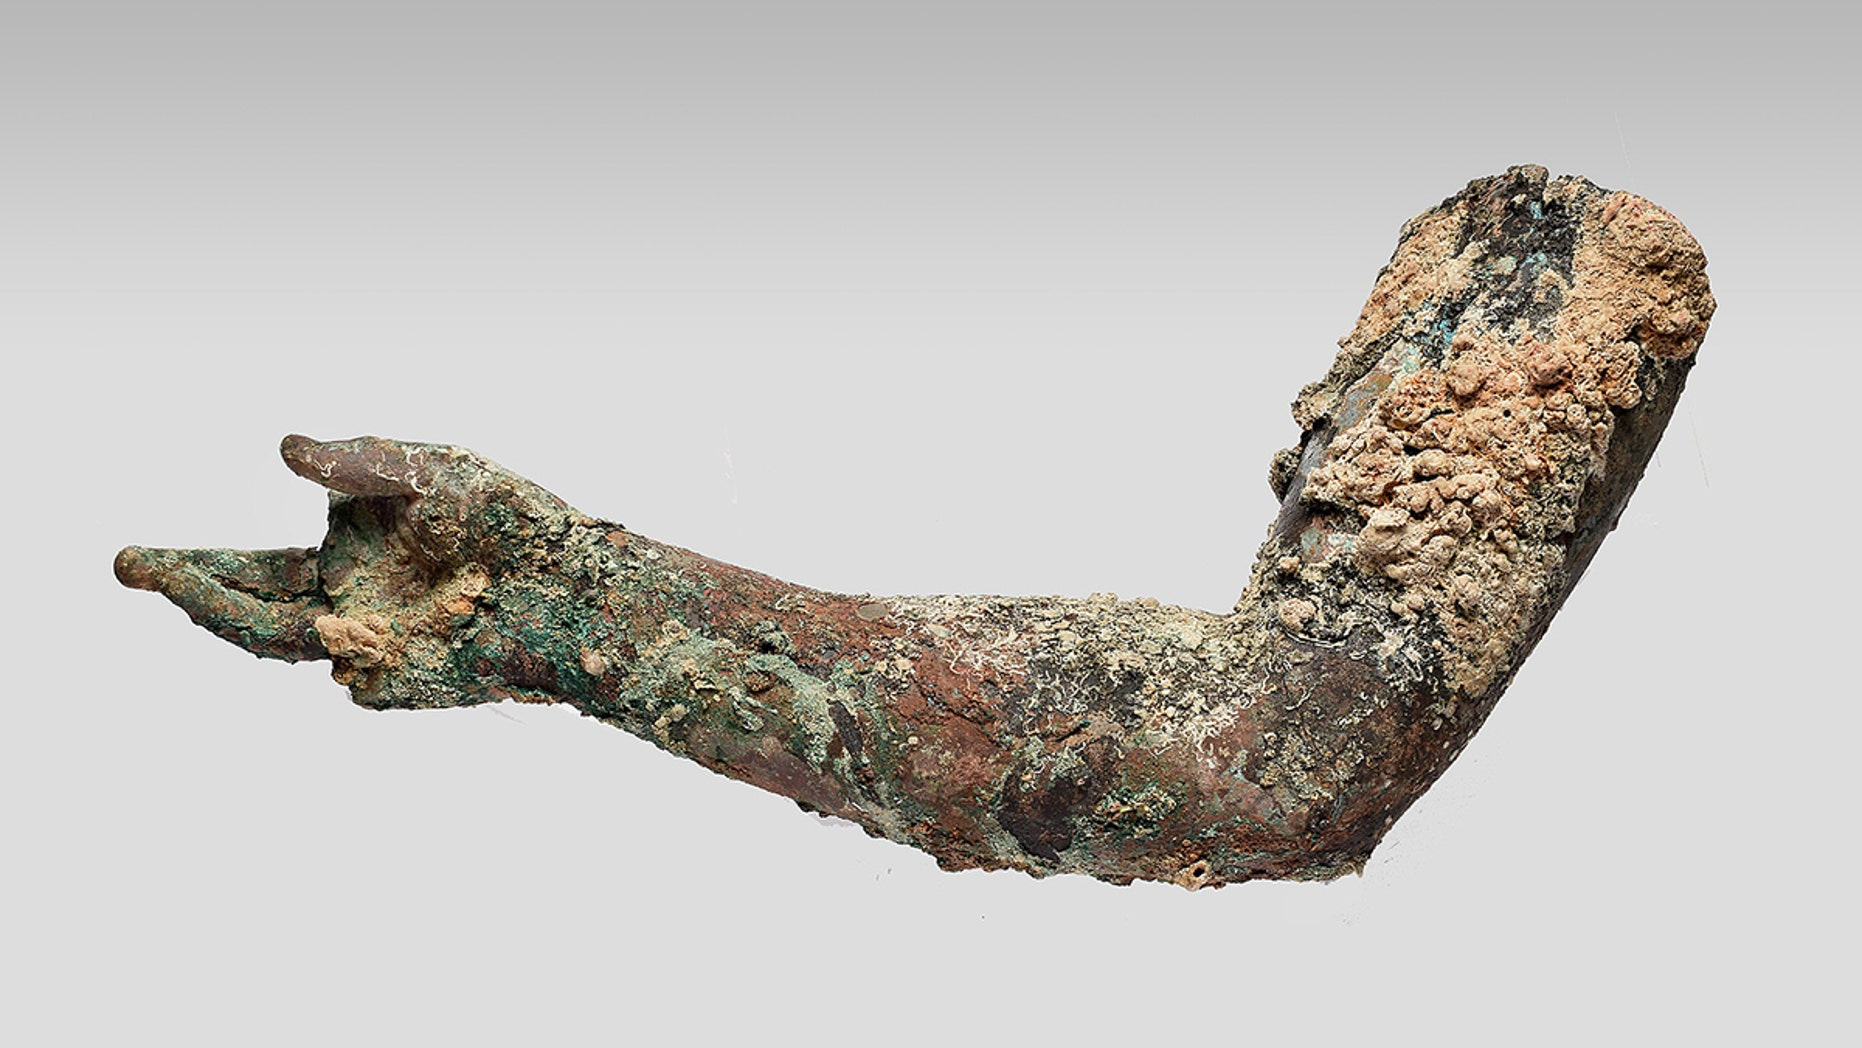 A bronze right arm, preserved from the shoulder to the fingers, was recently recovered from the Antikythera shipwreck.